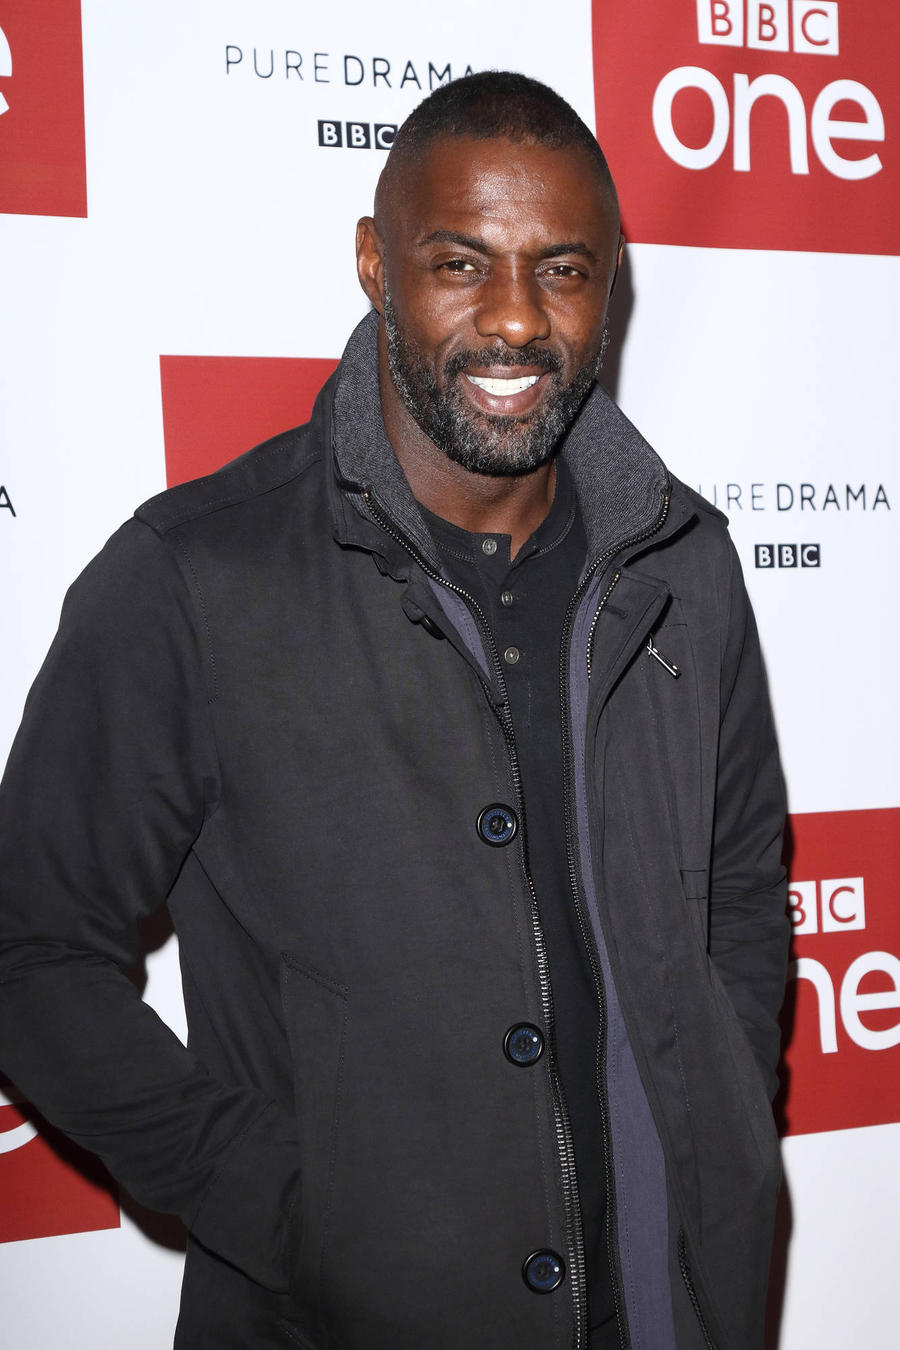 Idris Elba And Dominic West Reunite For Finding Dory